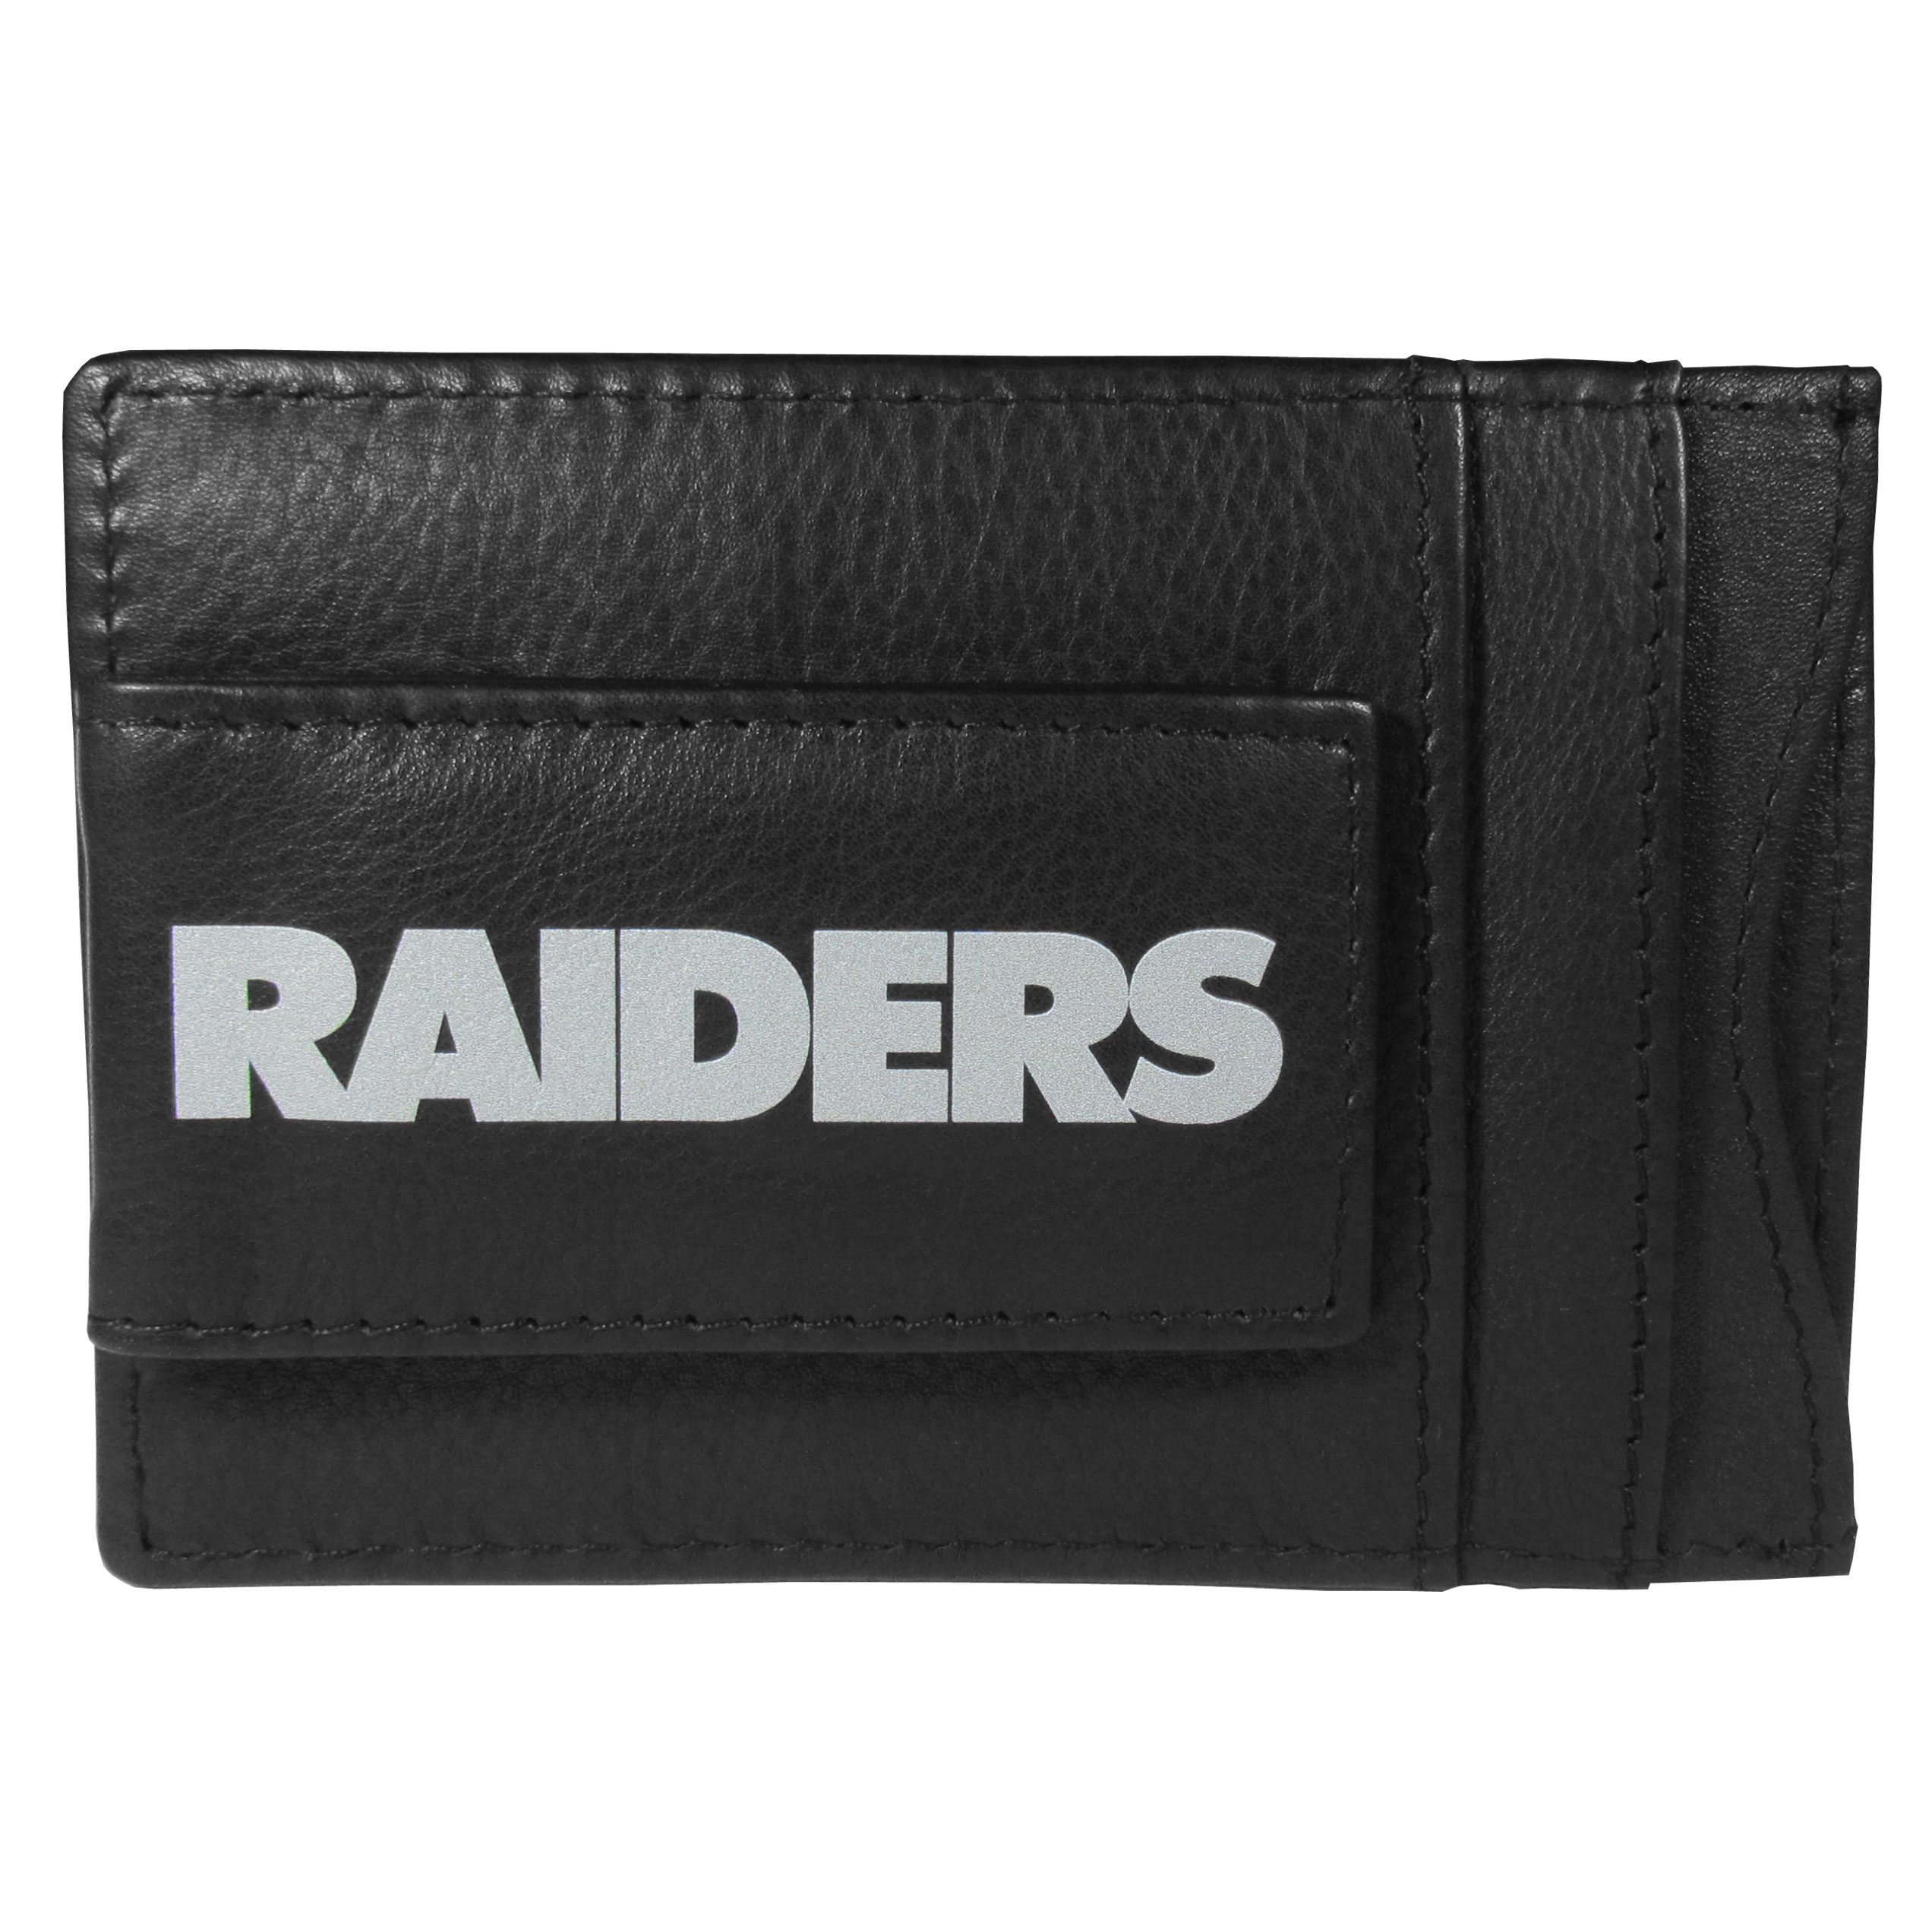 Oakland Raiders Logo Leather Cash and Cardholder - This super slim leather wallet lets you have all the benefits of a money clip while keeping the organization of a wallet. On one side of this front pocket wallet there is a strong, magnetic money clip to keep your cash easily accessible and the?Oakland Raiders team logo on the front. The versatile men's accessory is a perfect addition to your fan apparel.